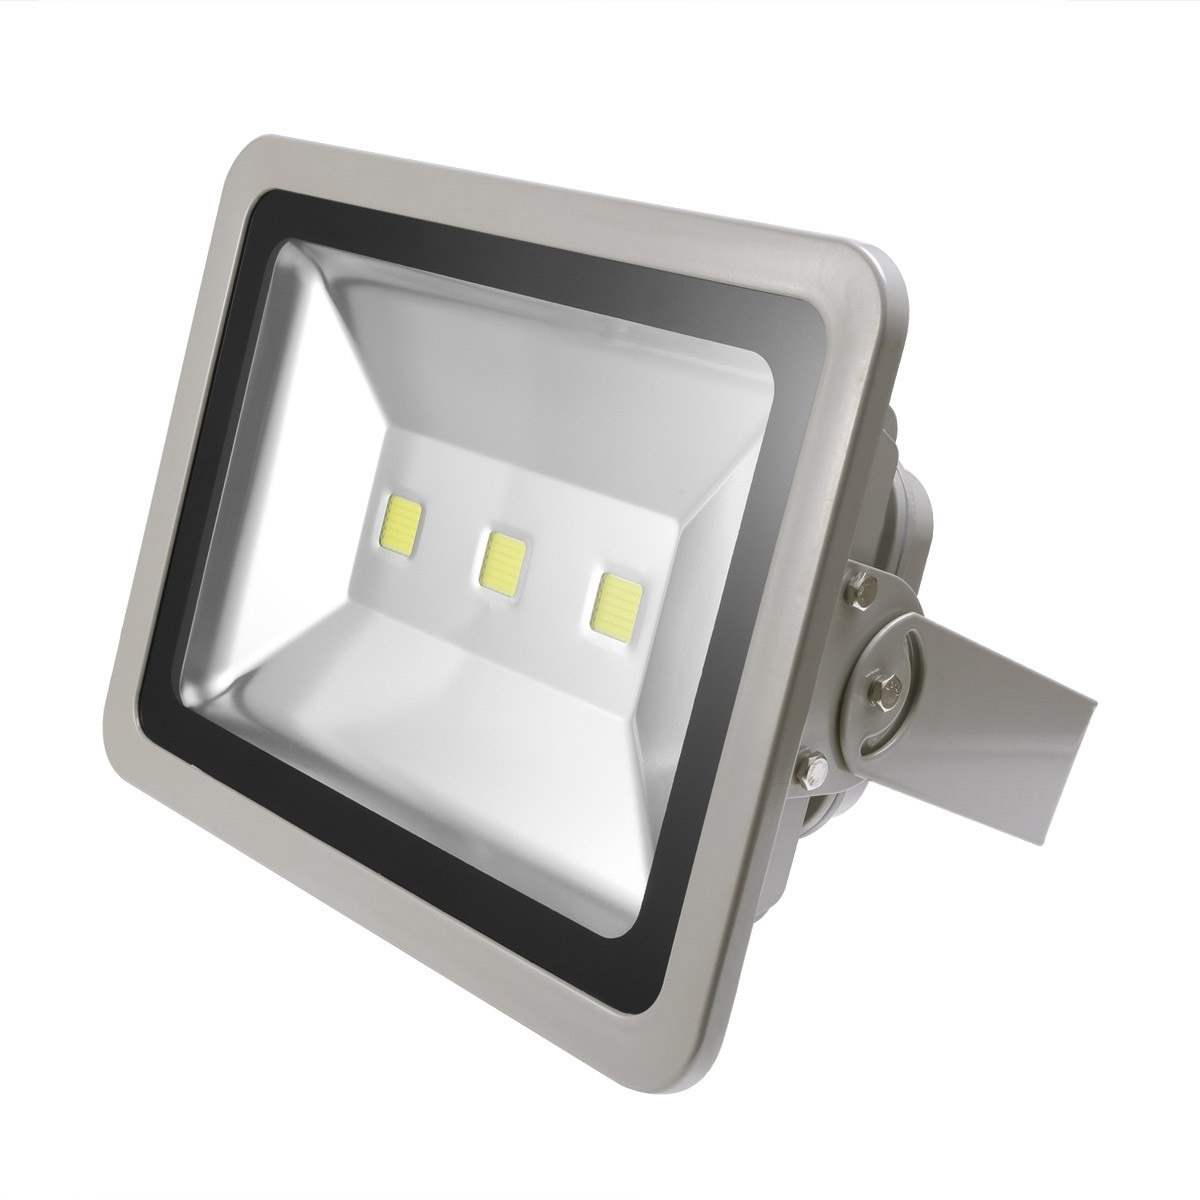 [%led Flood Light High Power Outdoor Lfl19 150w 240w [lfl19] : Led Pertaining To Famous Outdoor Ceiling Flood Lights|outdoor Ceiling Flood Lights Regarding 2019 Led Flood Light High Power Outdoor Lfl19 150w 240w [lfl19] : Led|2018 Outdoor Ceiling Flood Lights For Led Flood Light High Power Outdoor Lfl19 150w 240w [lfl19] : Led|fashionable Led Flood Light High Power Outdoor Lfl19 150w 240w [lfl19] : Led Pertaining To Outdoor Ceiling Flood Lights%] (View 17 of 20)